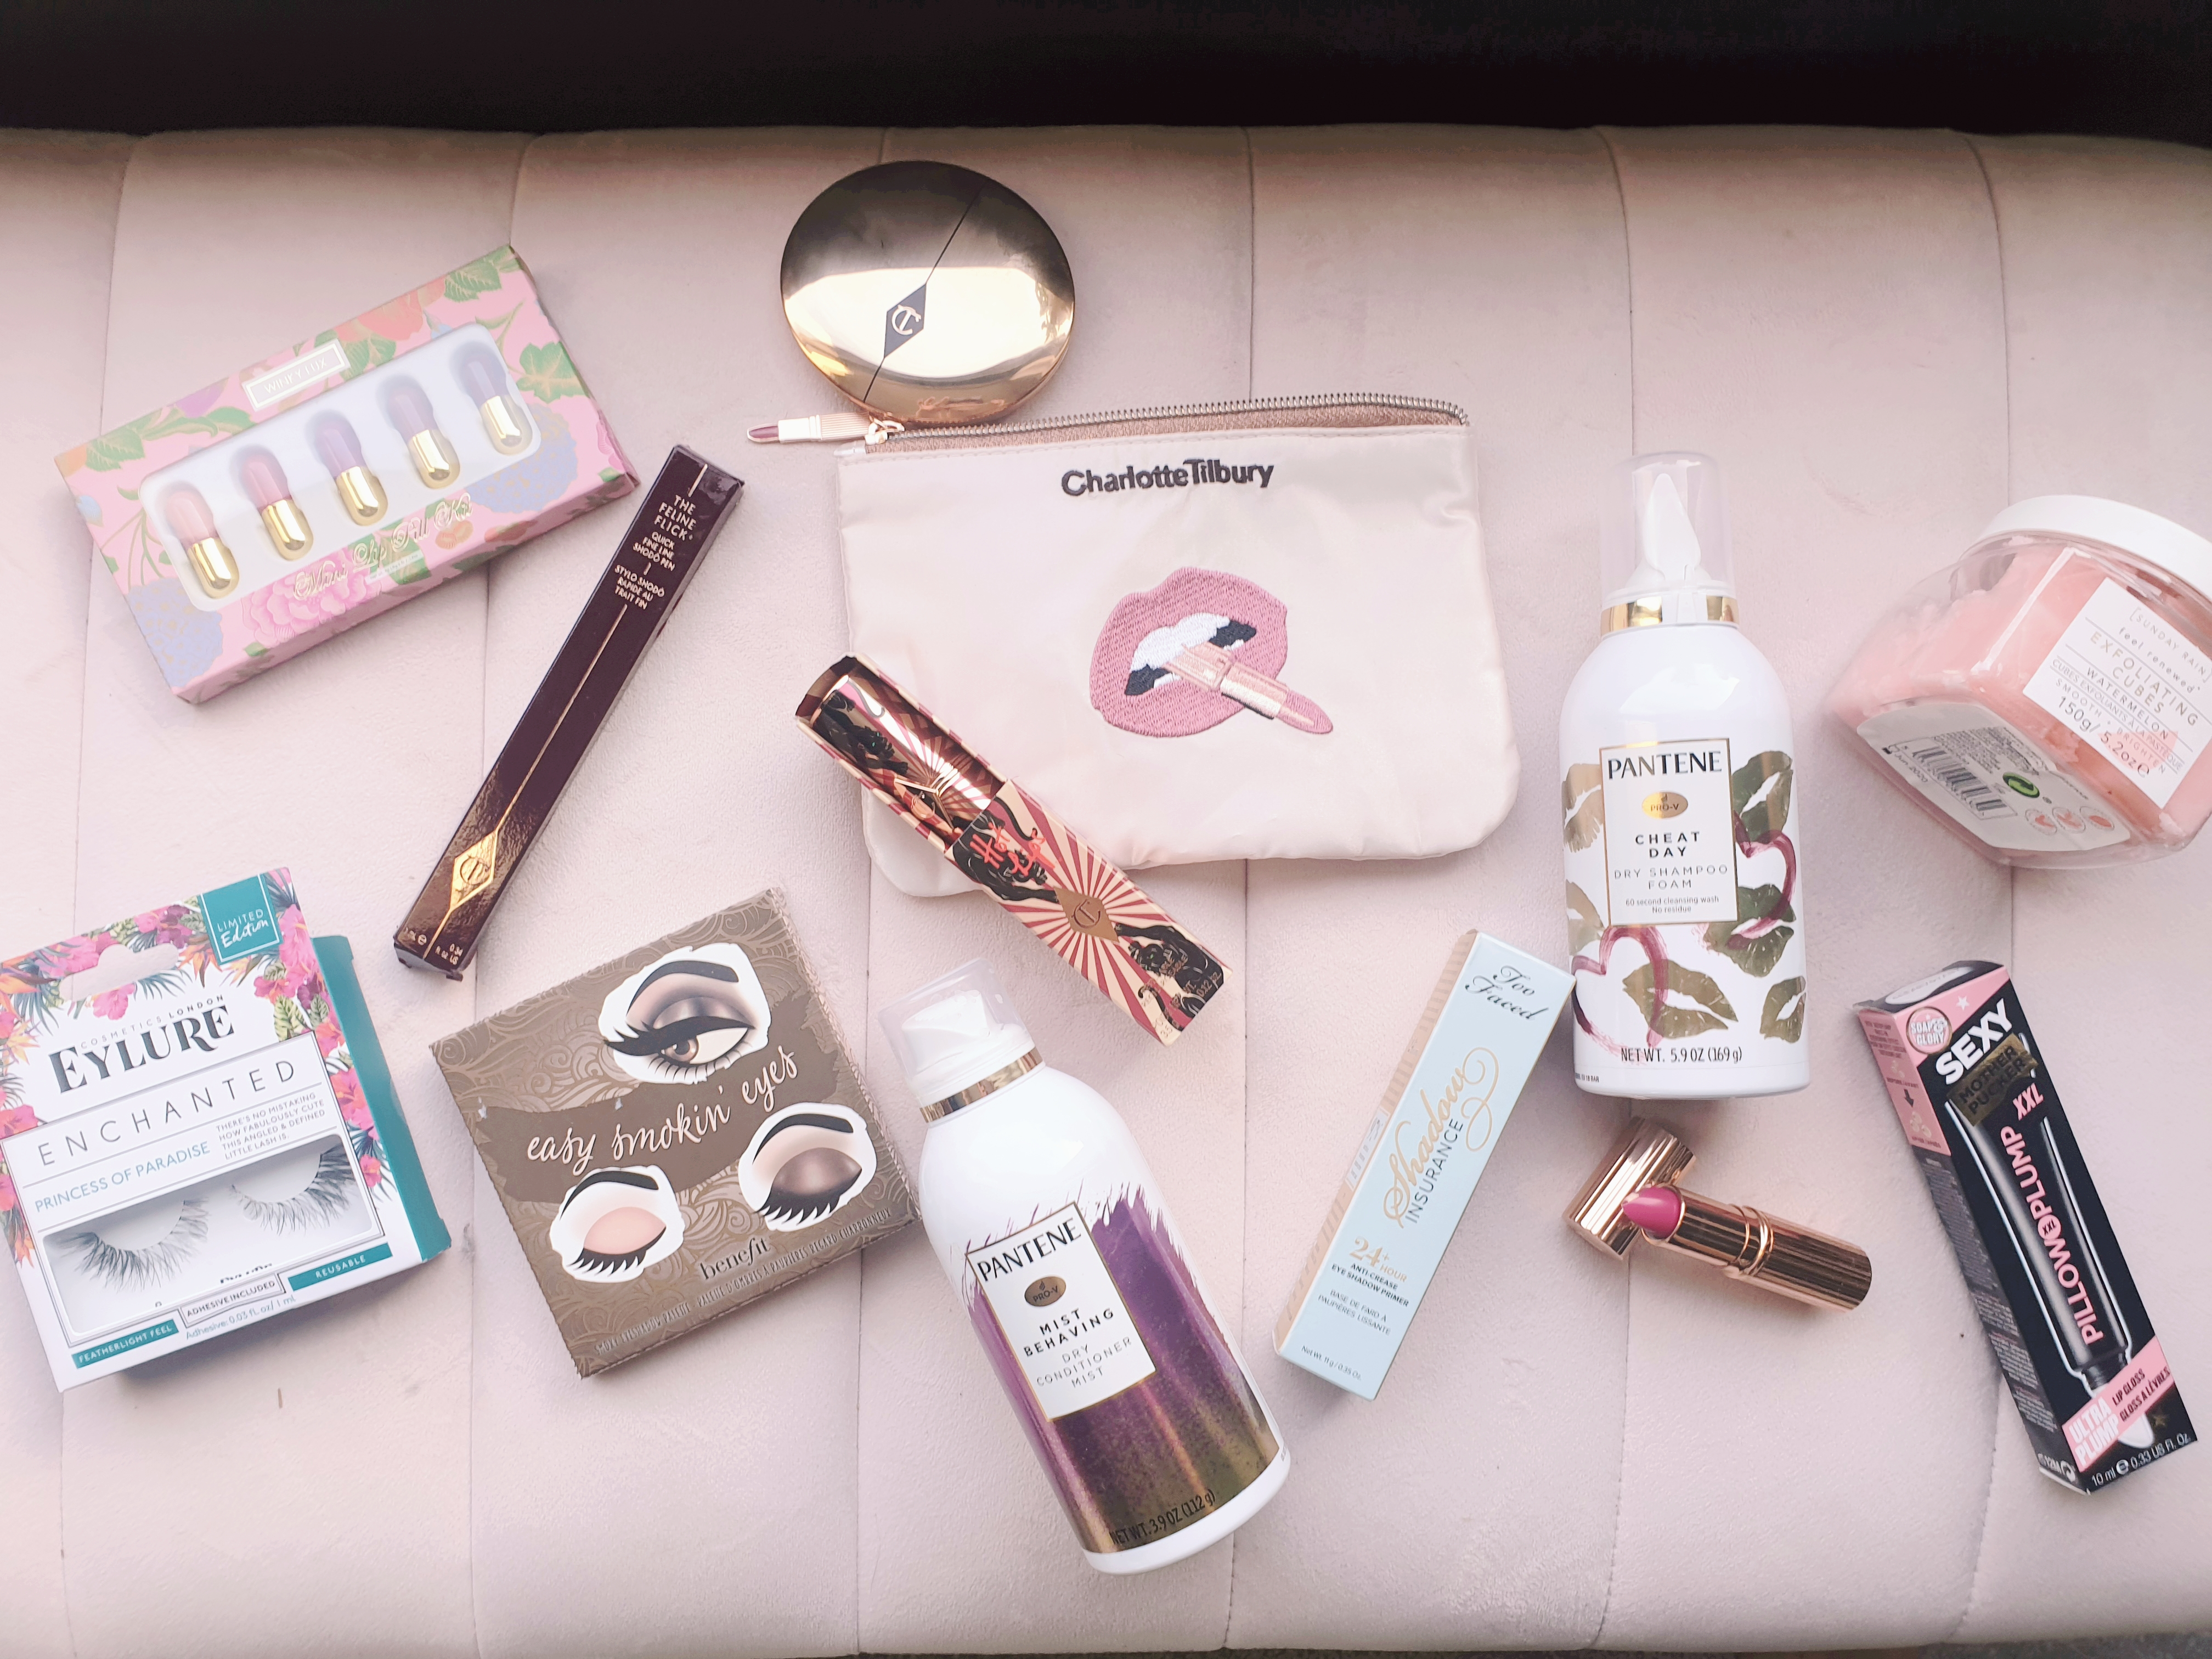 Beauty haul Charlotte Tilbury Ciate Soap and Glory Pantene Eylure